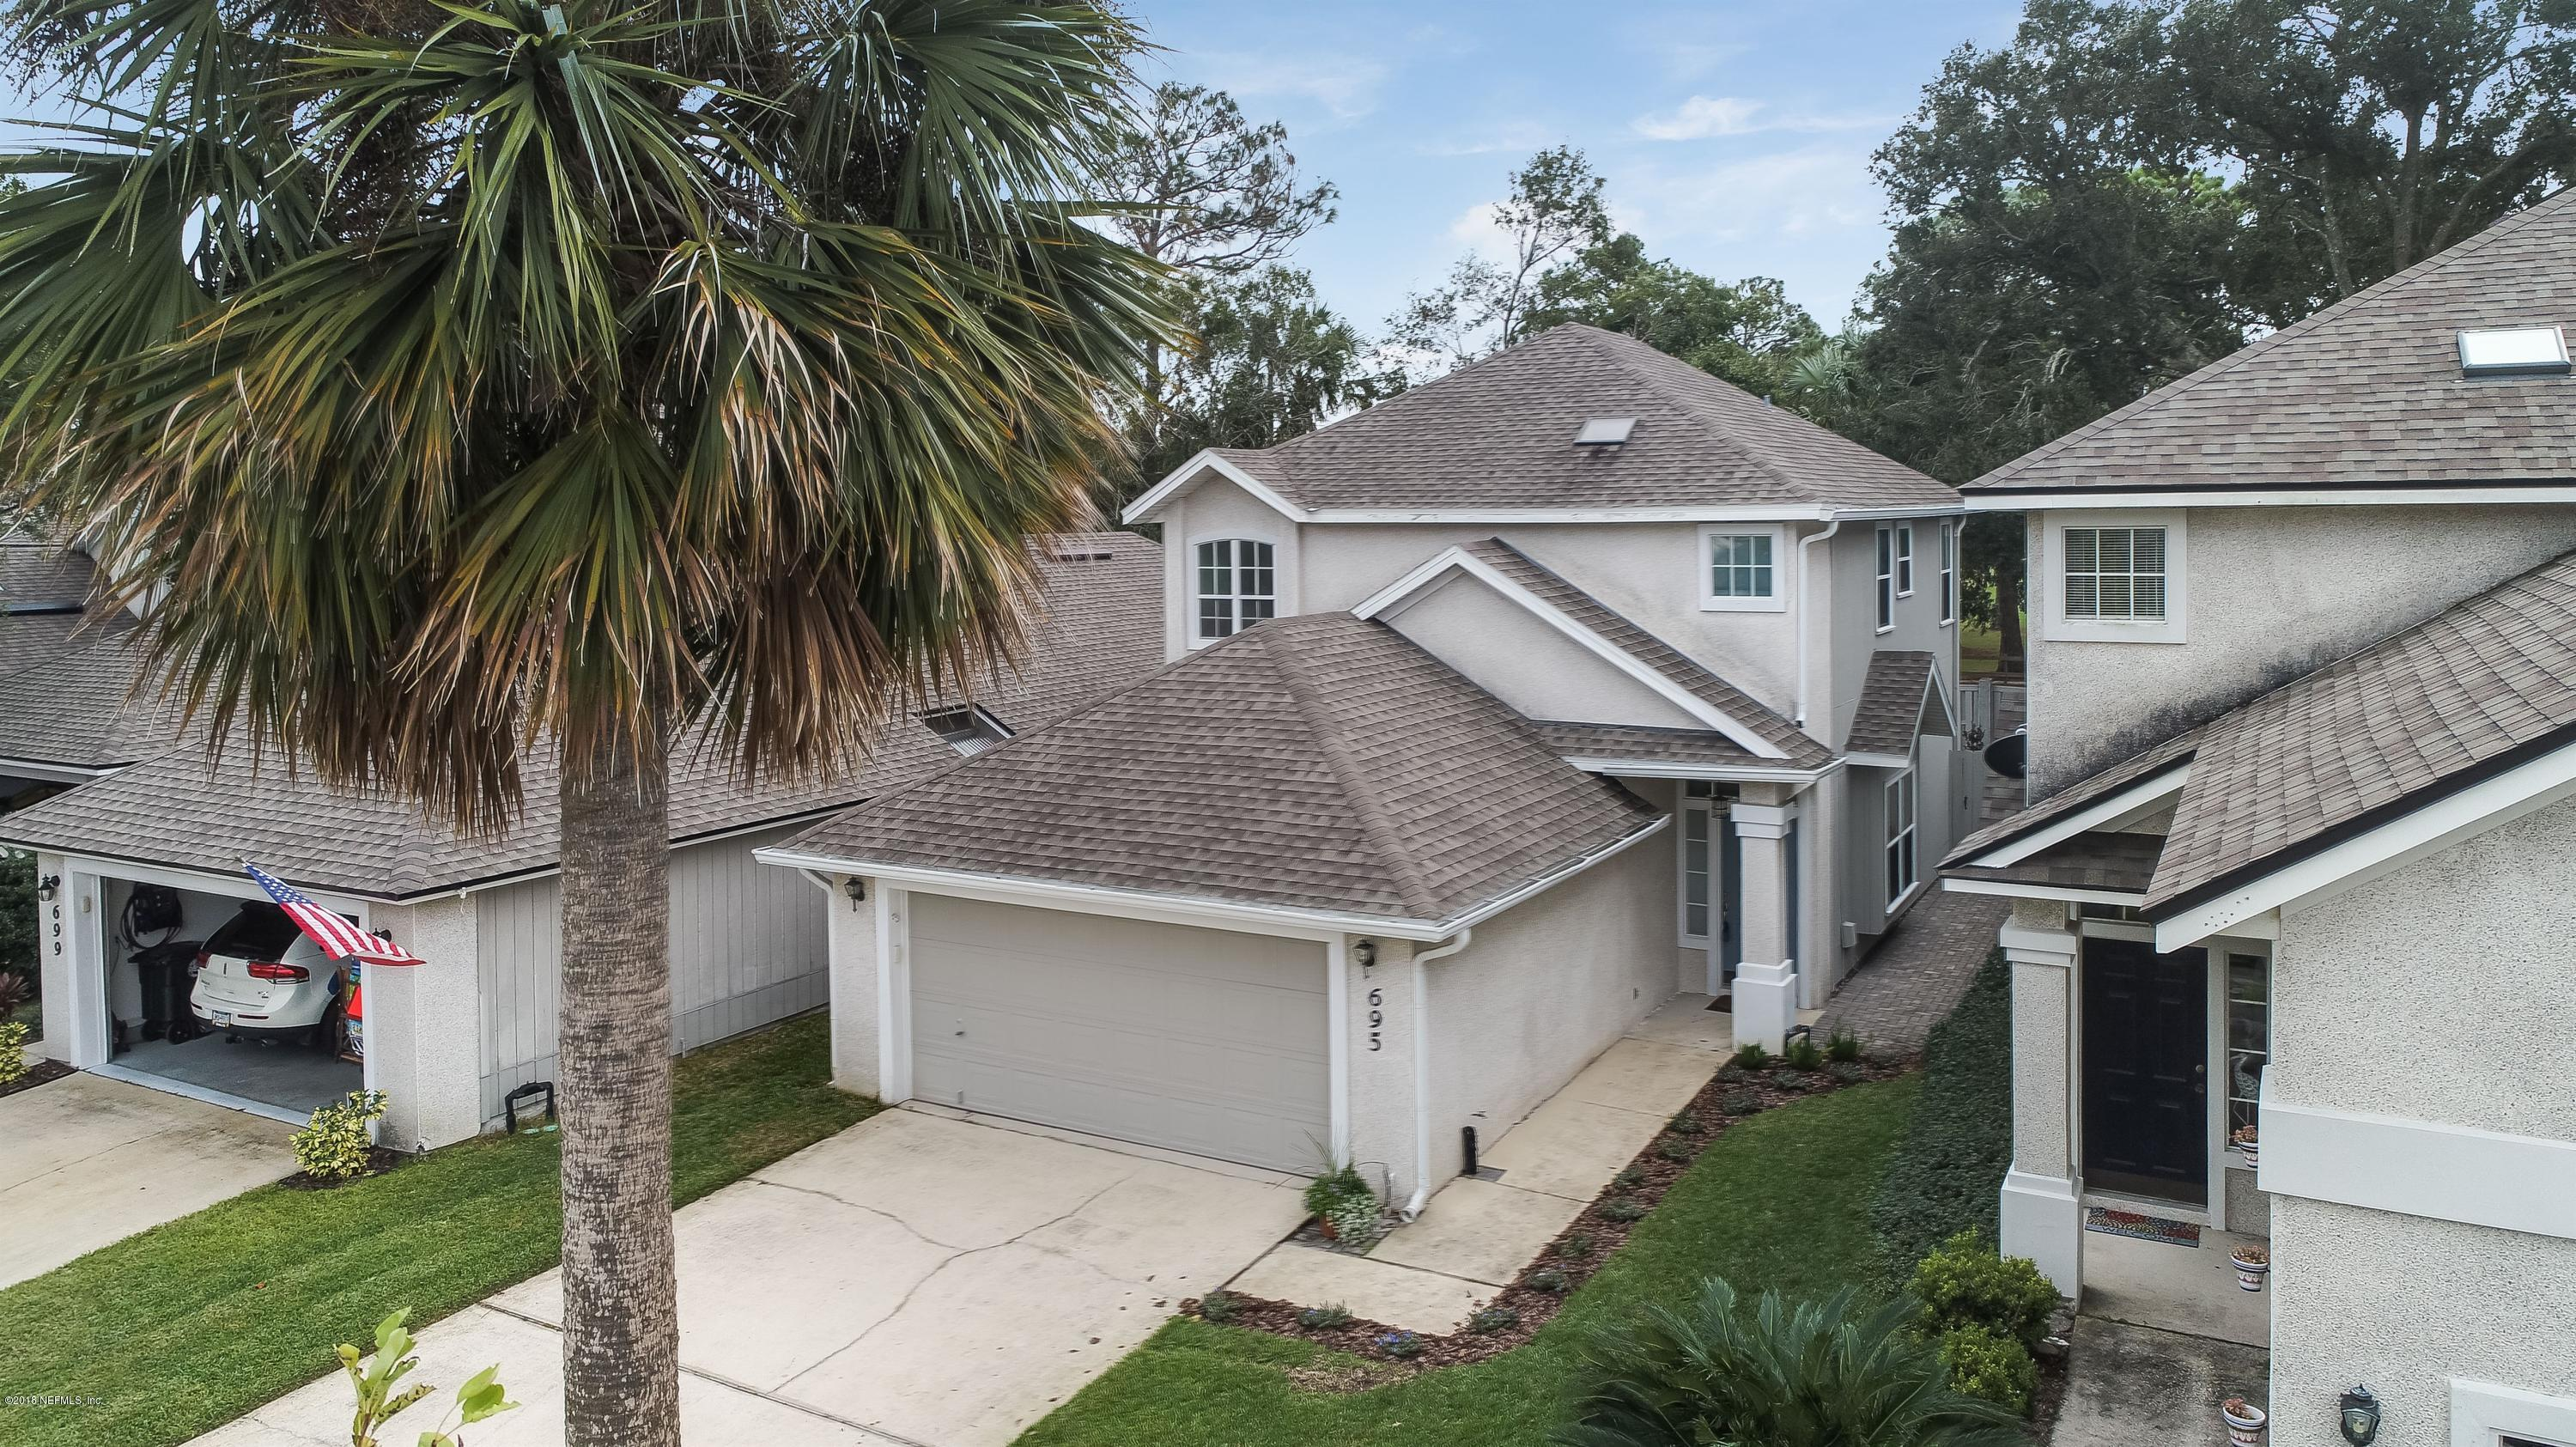 695 SELVA LAKES, ATLANTIC BEACH, FLORIDA 32233, 3 Bedrooms Bedrooms, ,2 BathroomsBathrooms,Residential - townhome,For sale,SELVA LAKES,966669